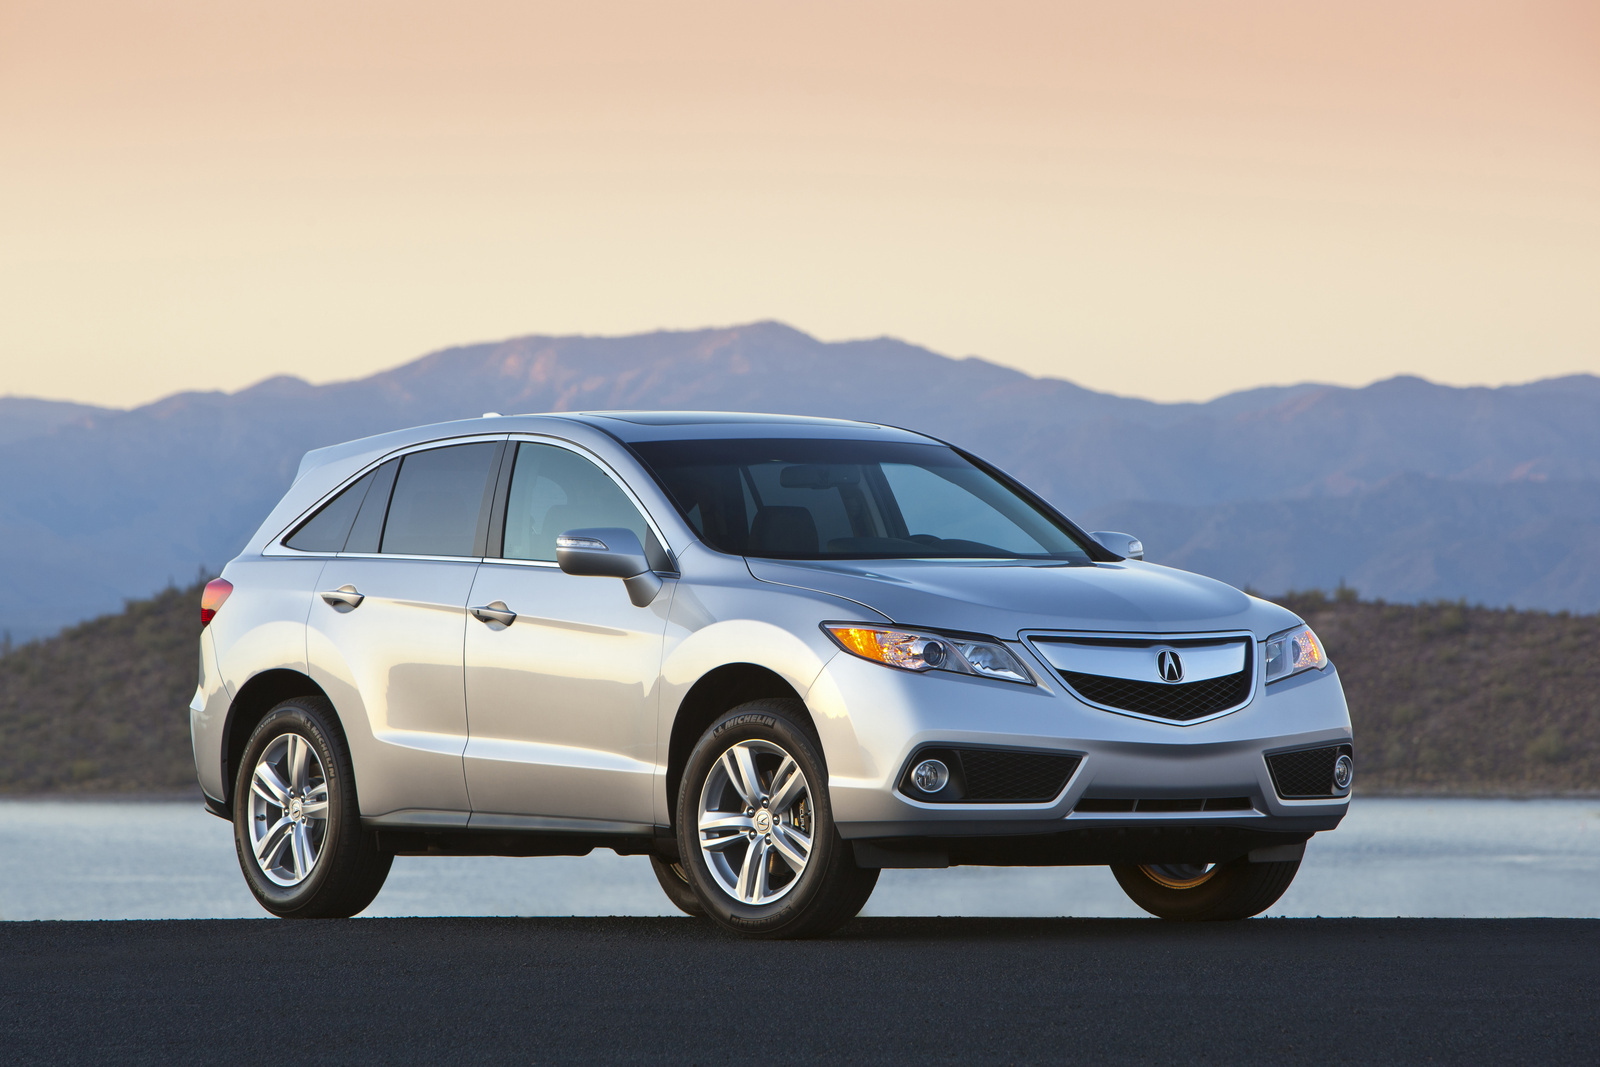 angle acura suv china hr autotribute rear small on based new in debuts cdx honda v rdx